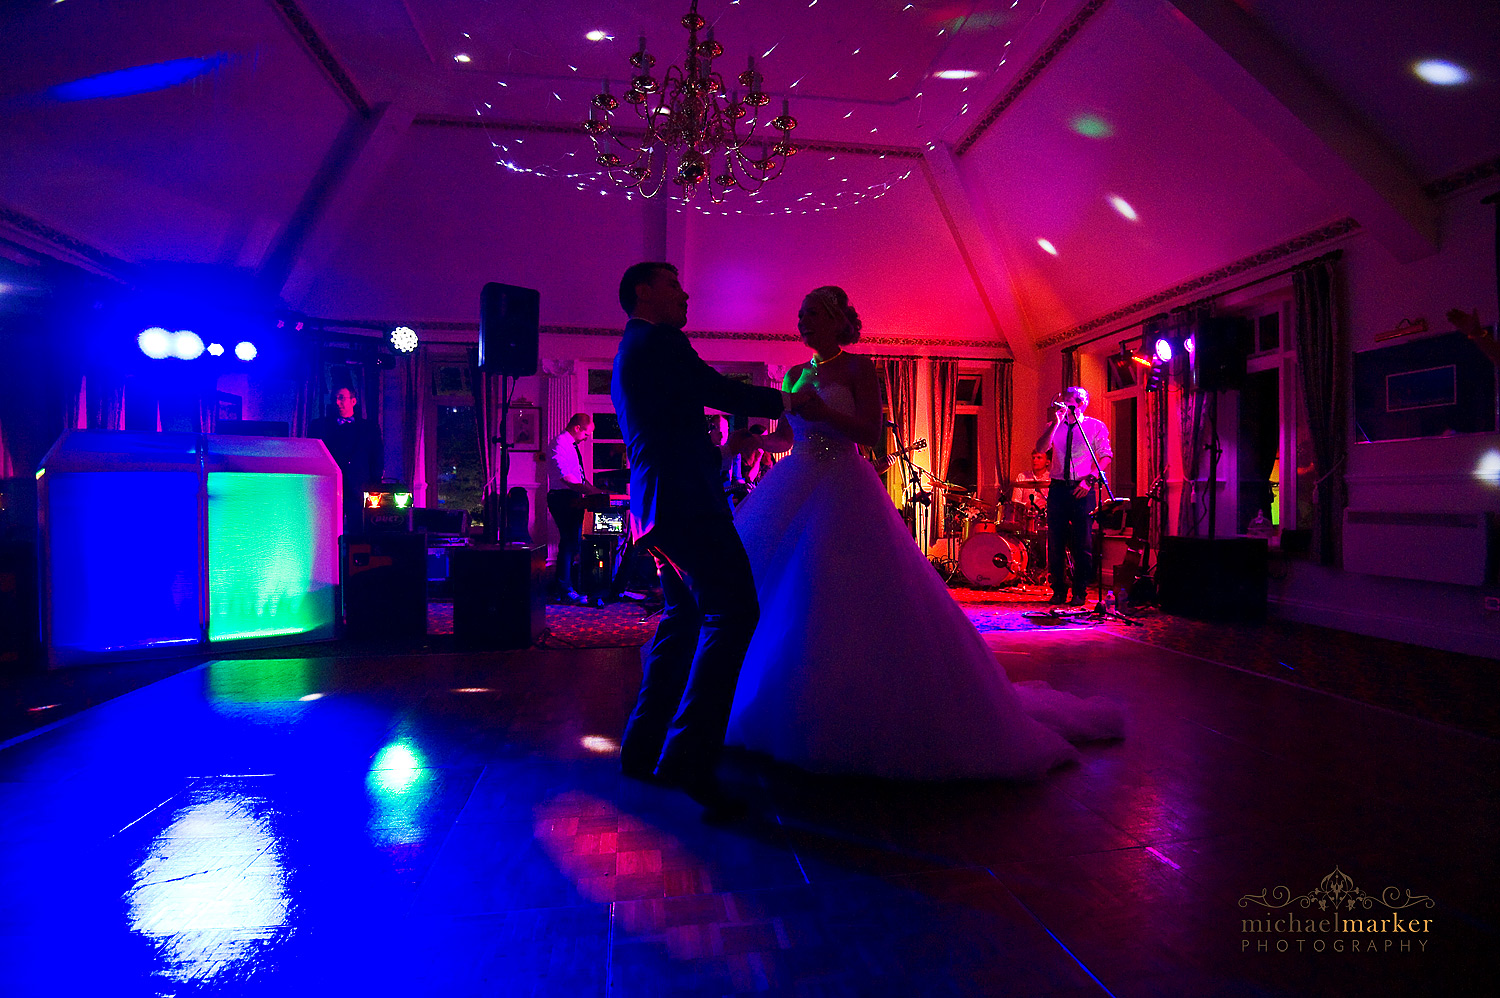 Bride and groom silhouette dancing at evening reception